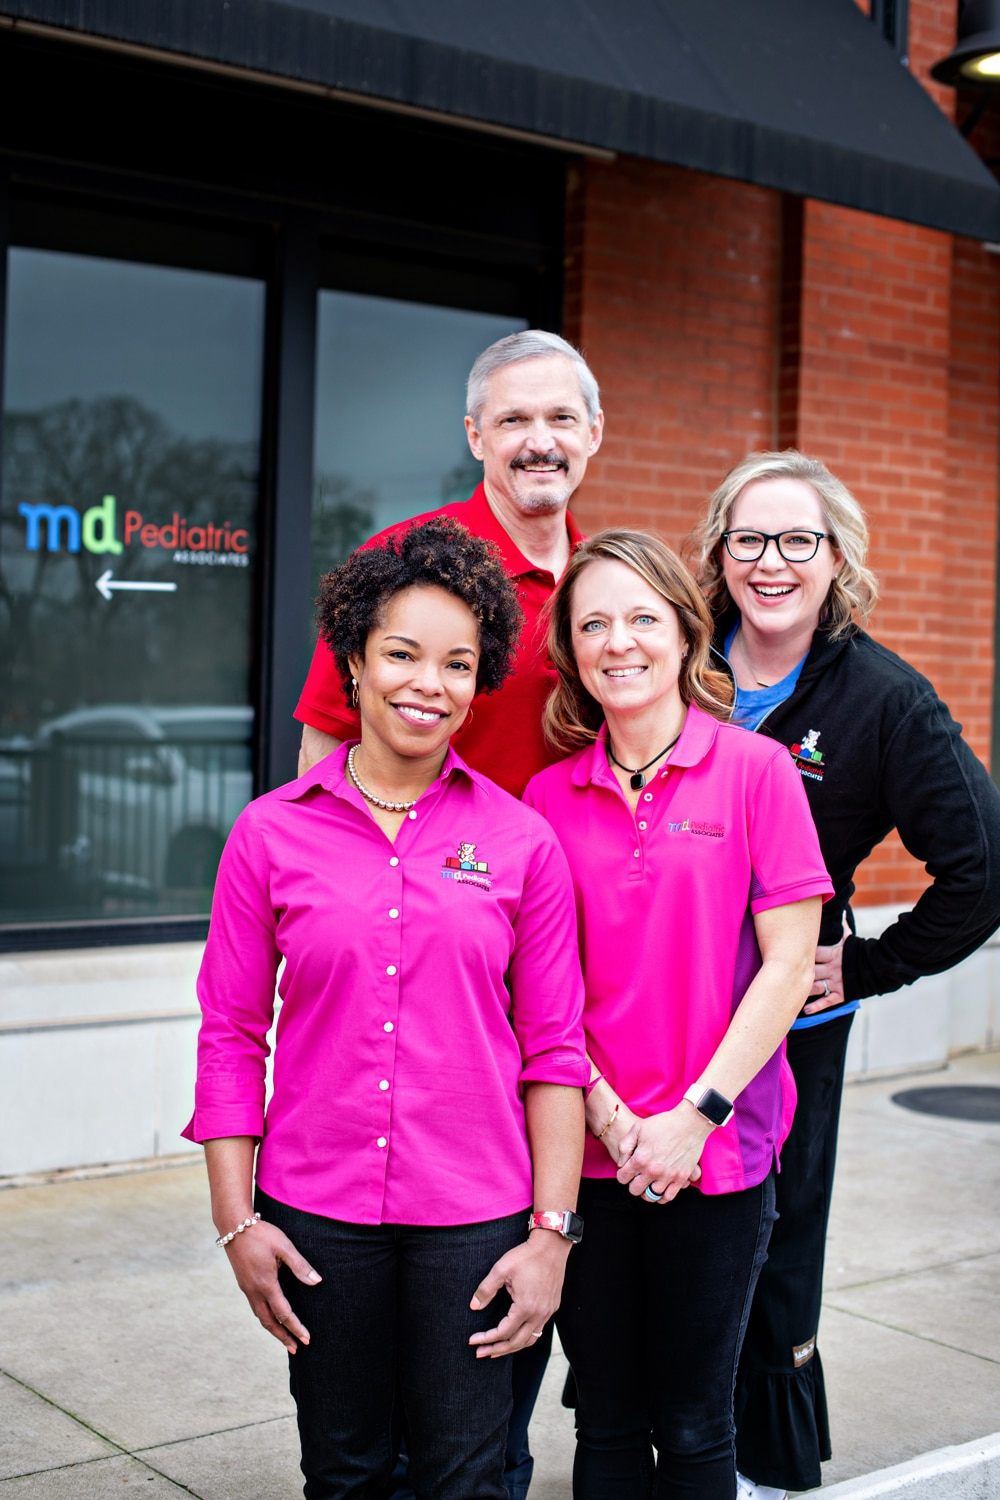 MD Pediatrics Flower Mound